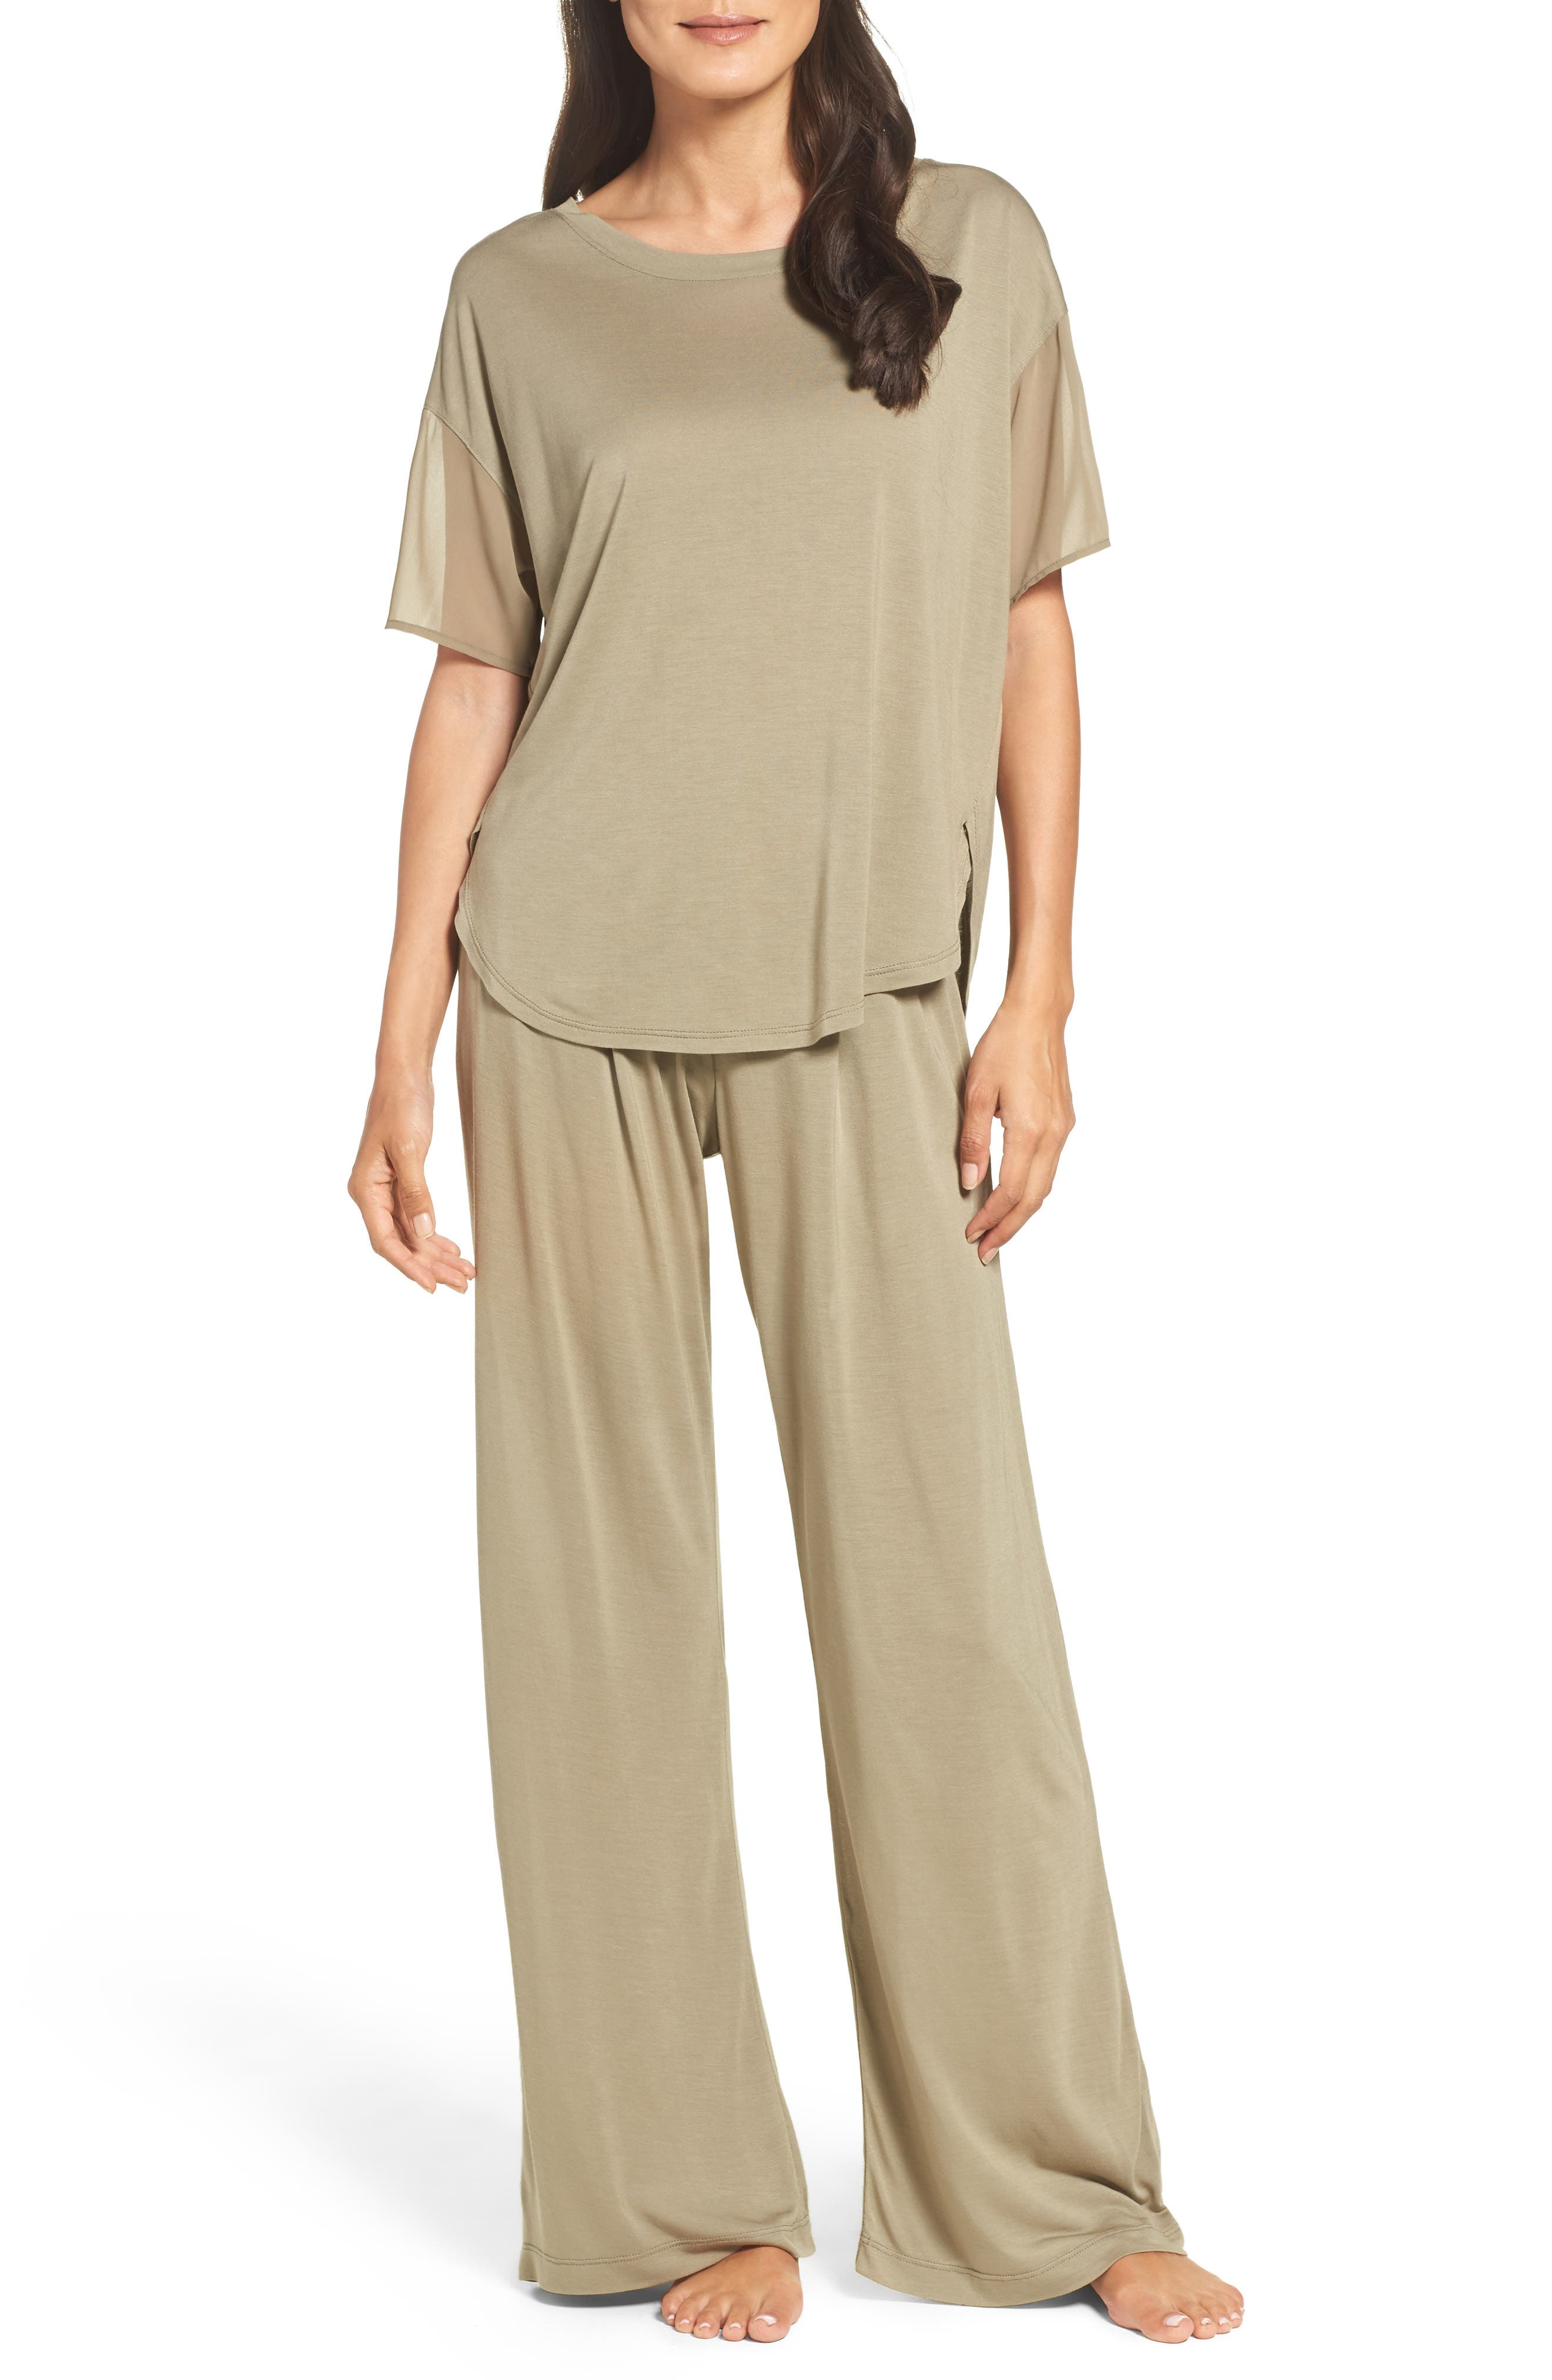 DKNY Sleep Tee & Pants